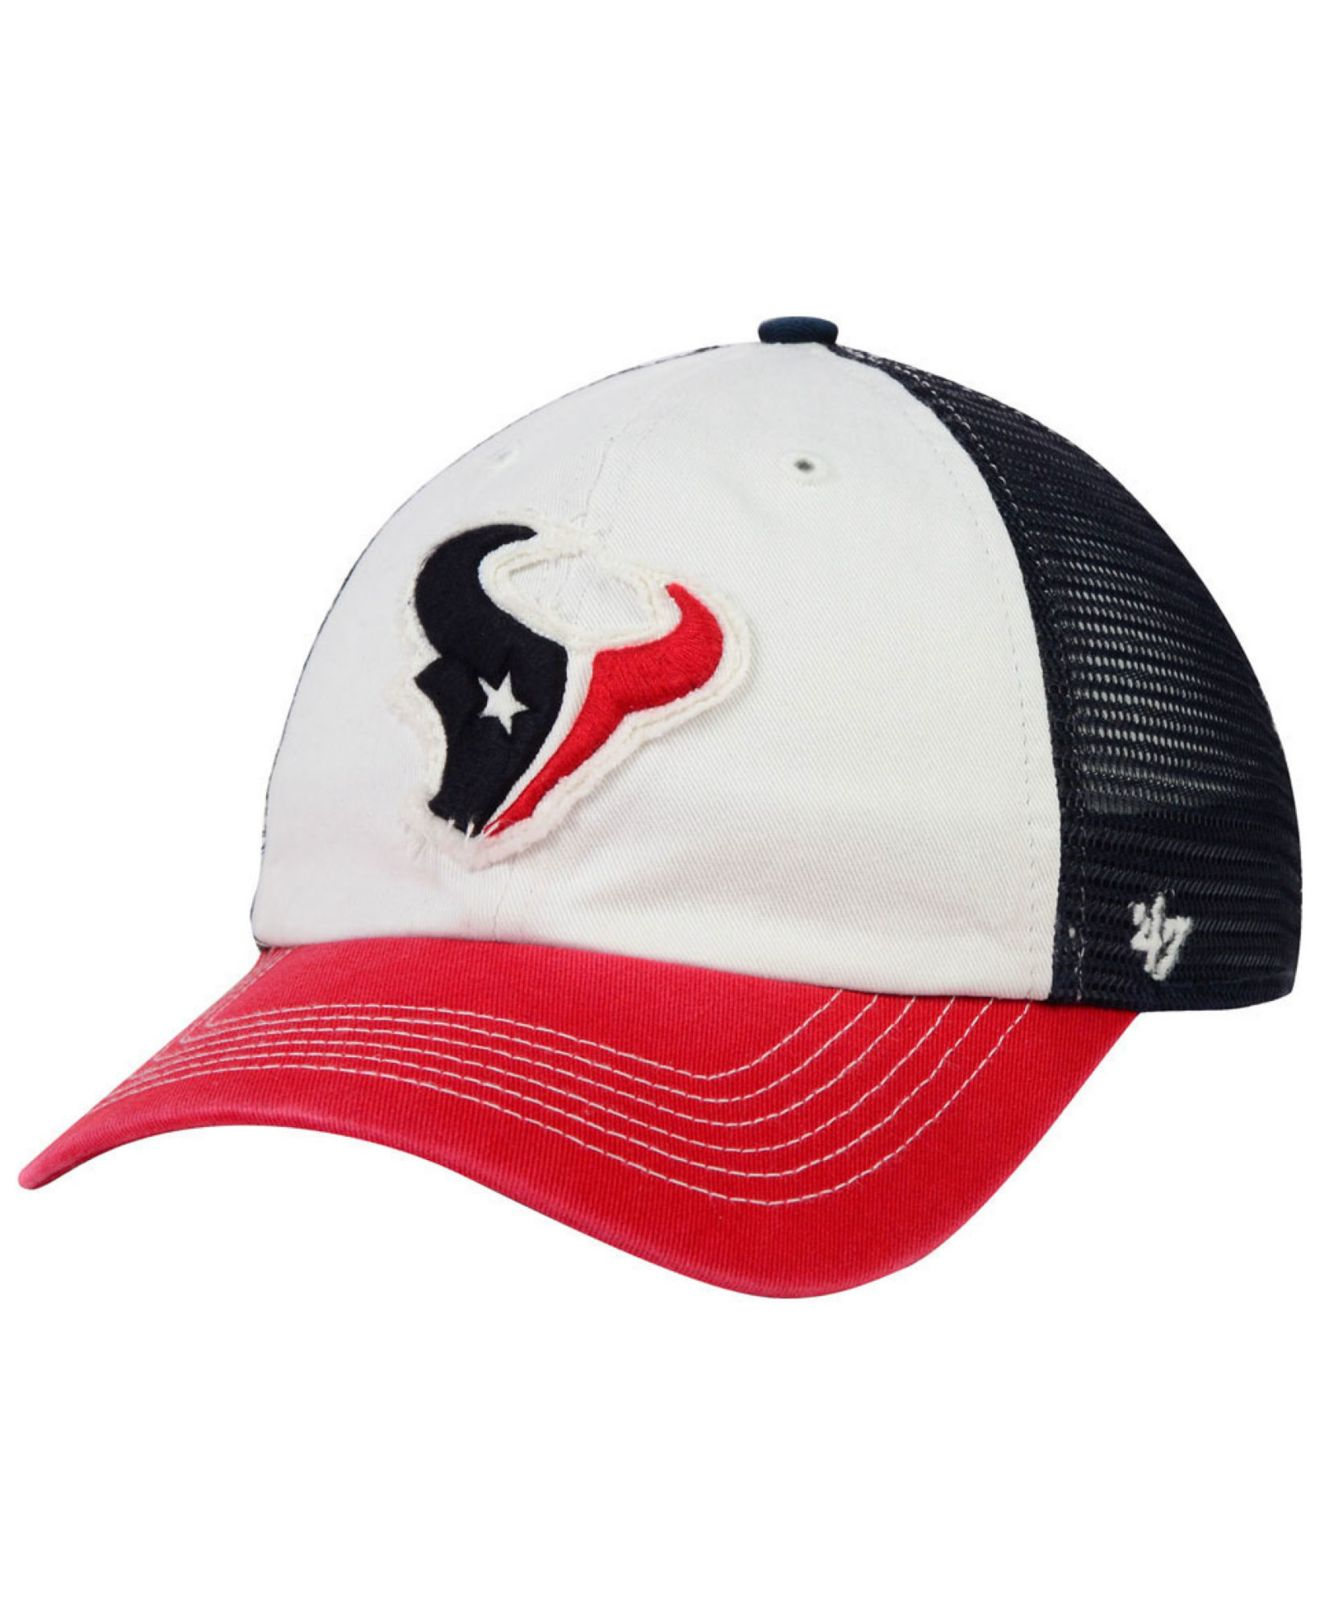 save off best new cheap 47 Brand Cotton Houston Texans Privateer Closer Cap in Red/Navy ...